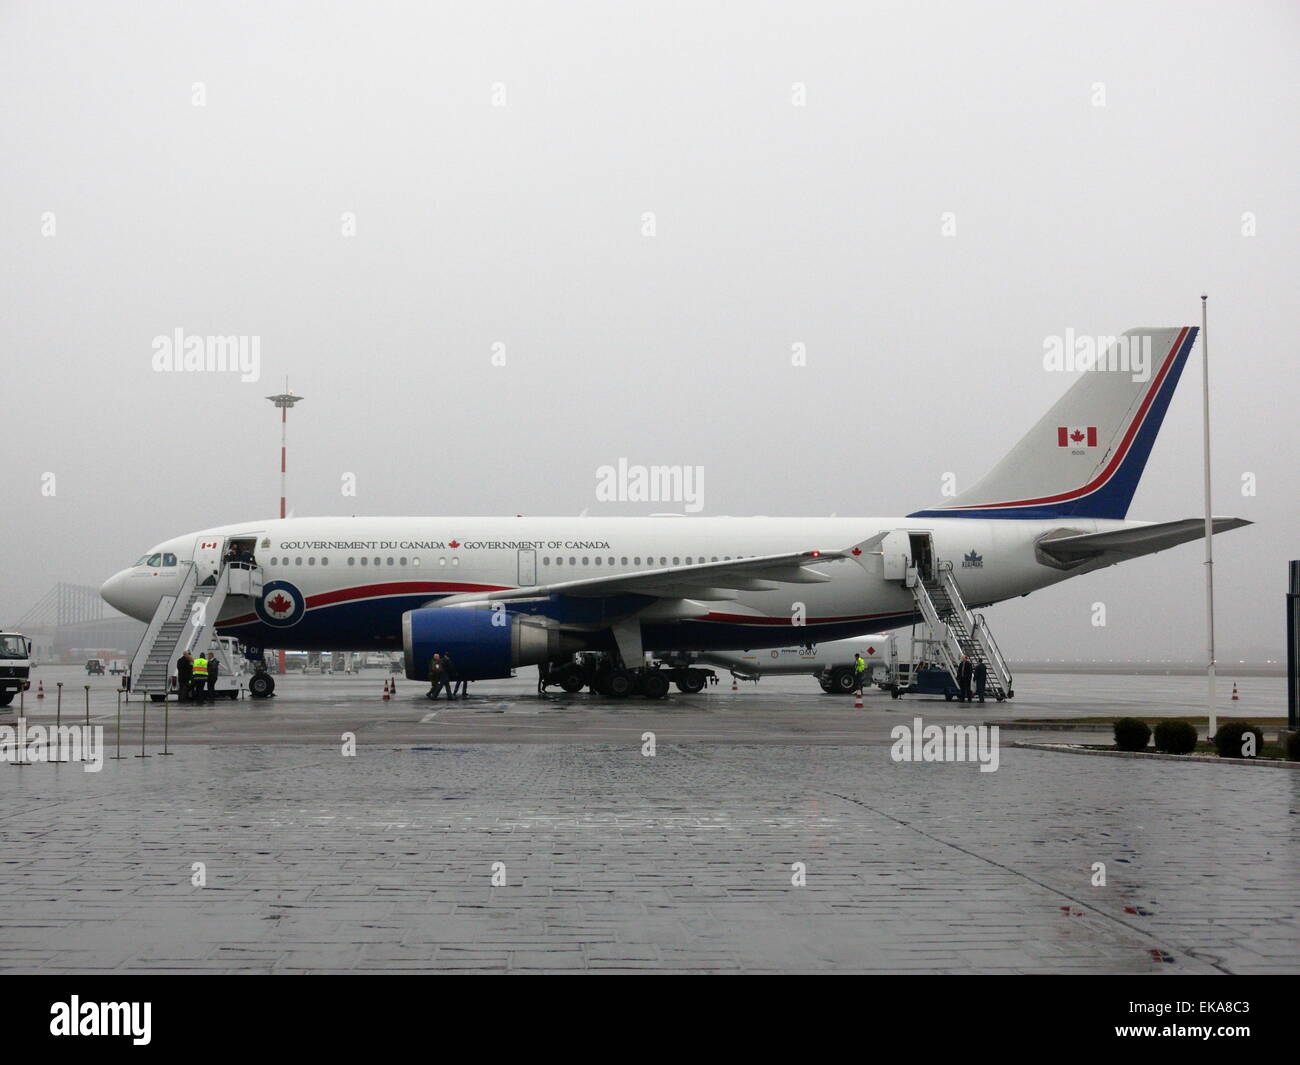 Airbus A310 CC-150 Polaris, RCAF 01, the Government of Canada VIP Airplane Stock Photo